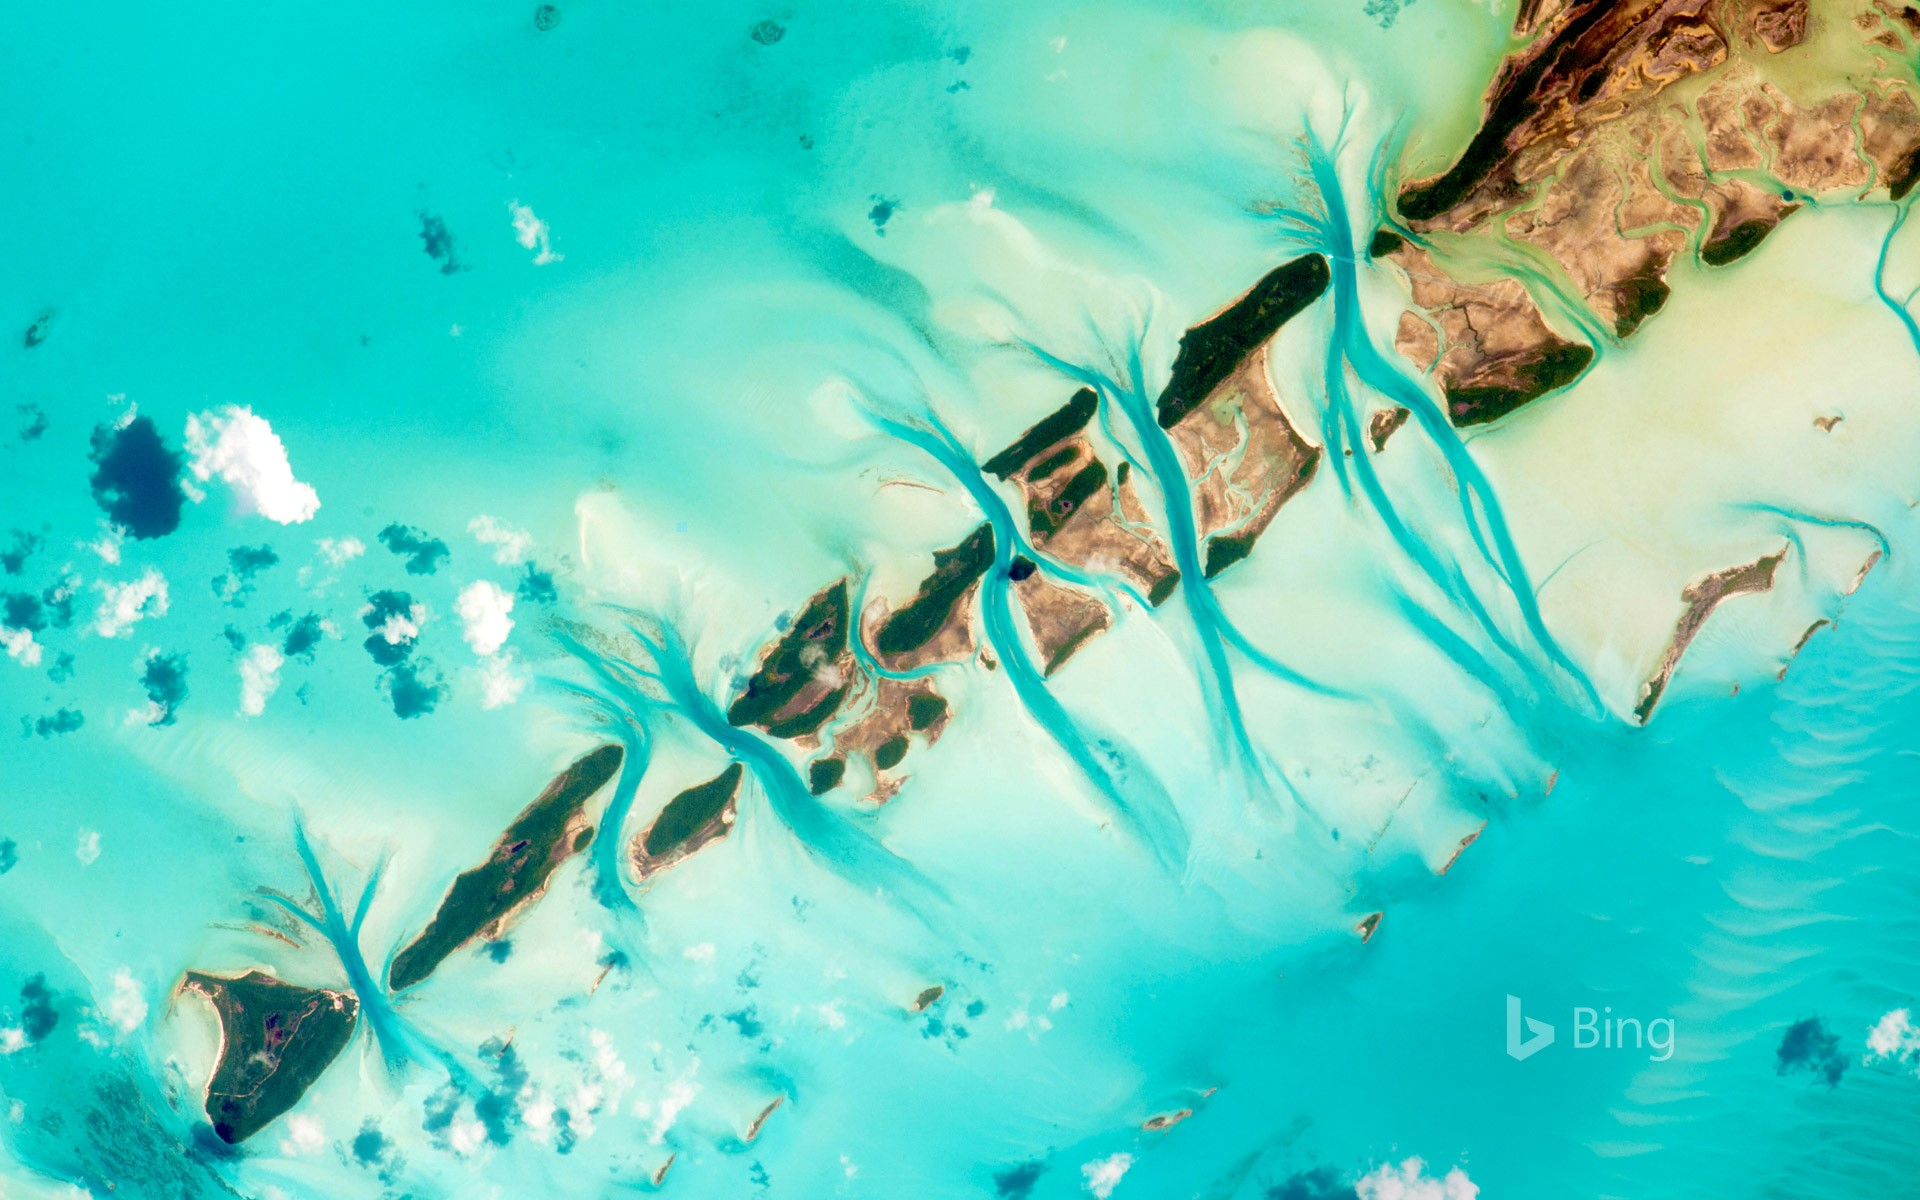 Small island cays west of Great Exuma in the Bahamas photographed from the International Space Station